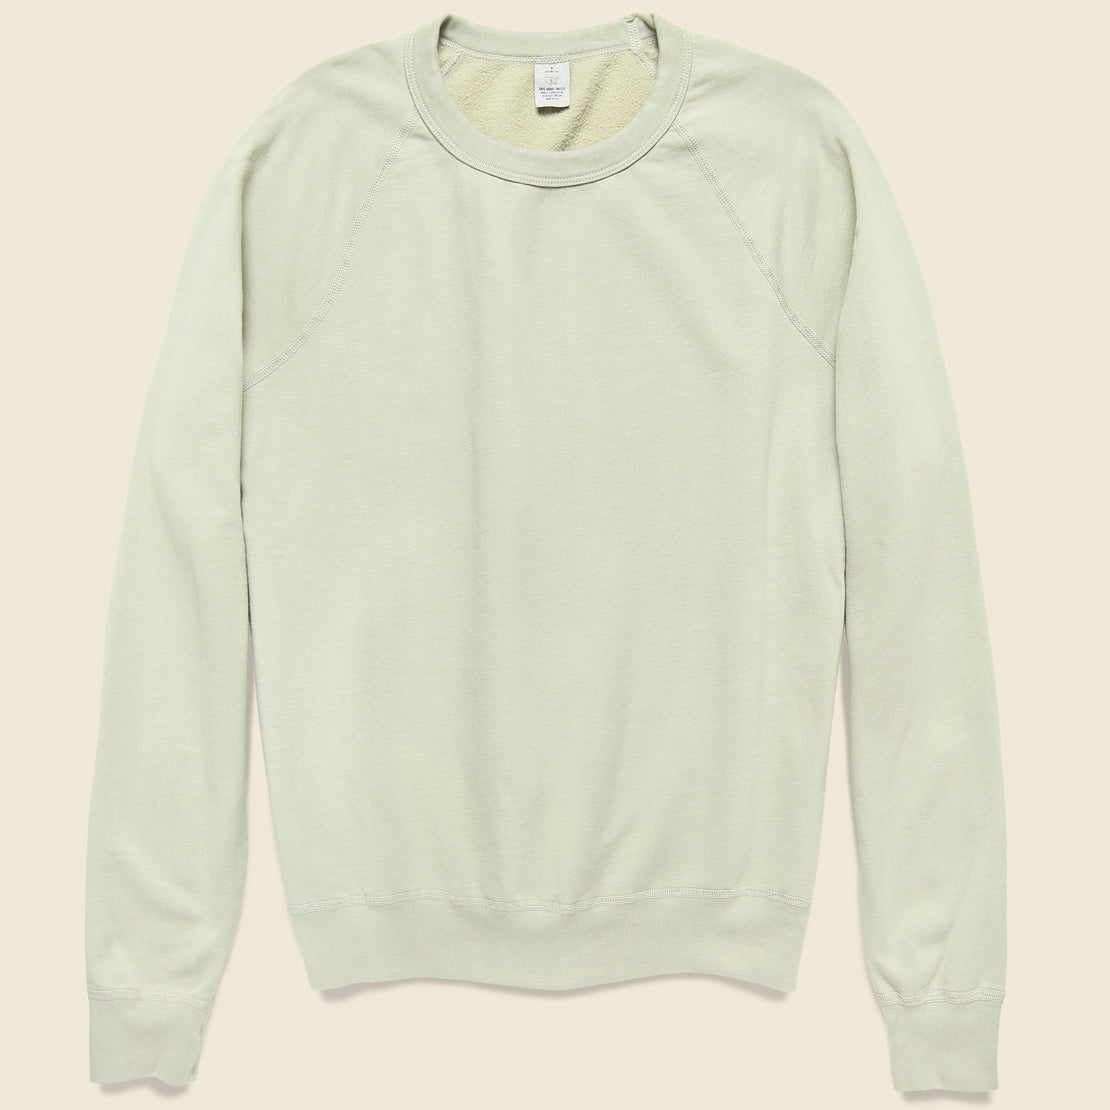 Save Khaki Supima Fleece Sweatshirt - Khaki